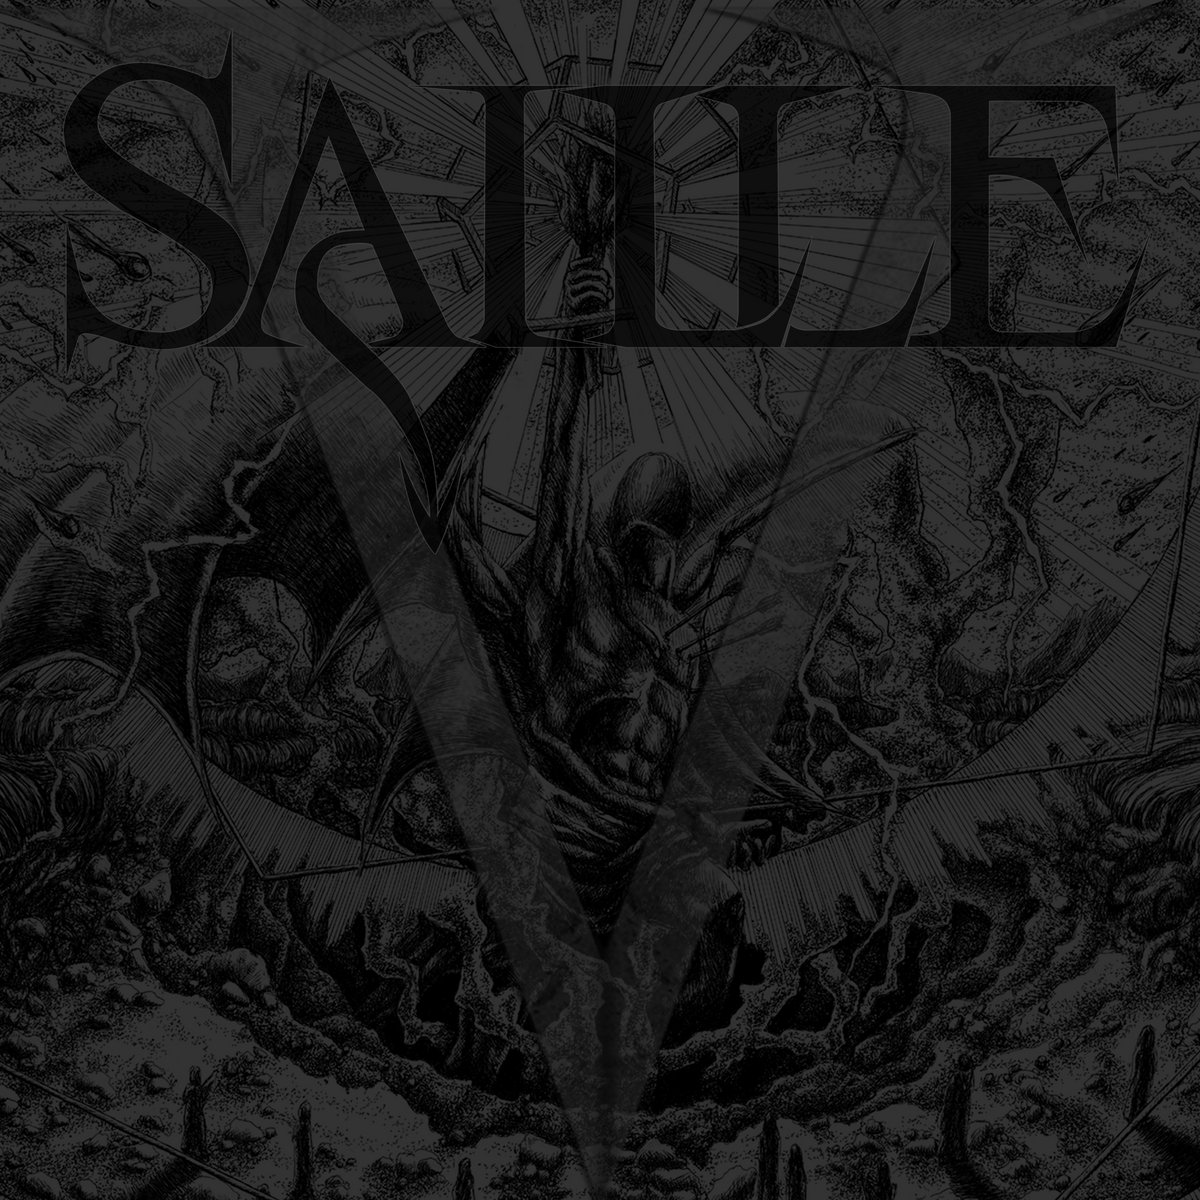 V Saille Album Cover Artwork